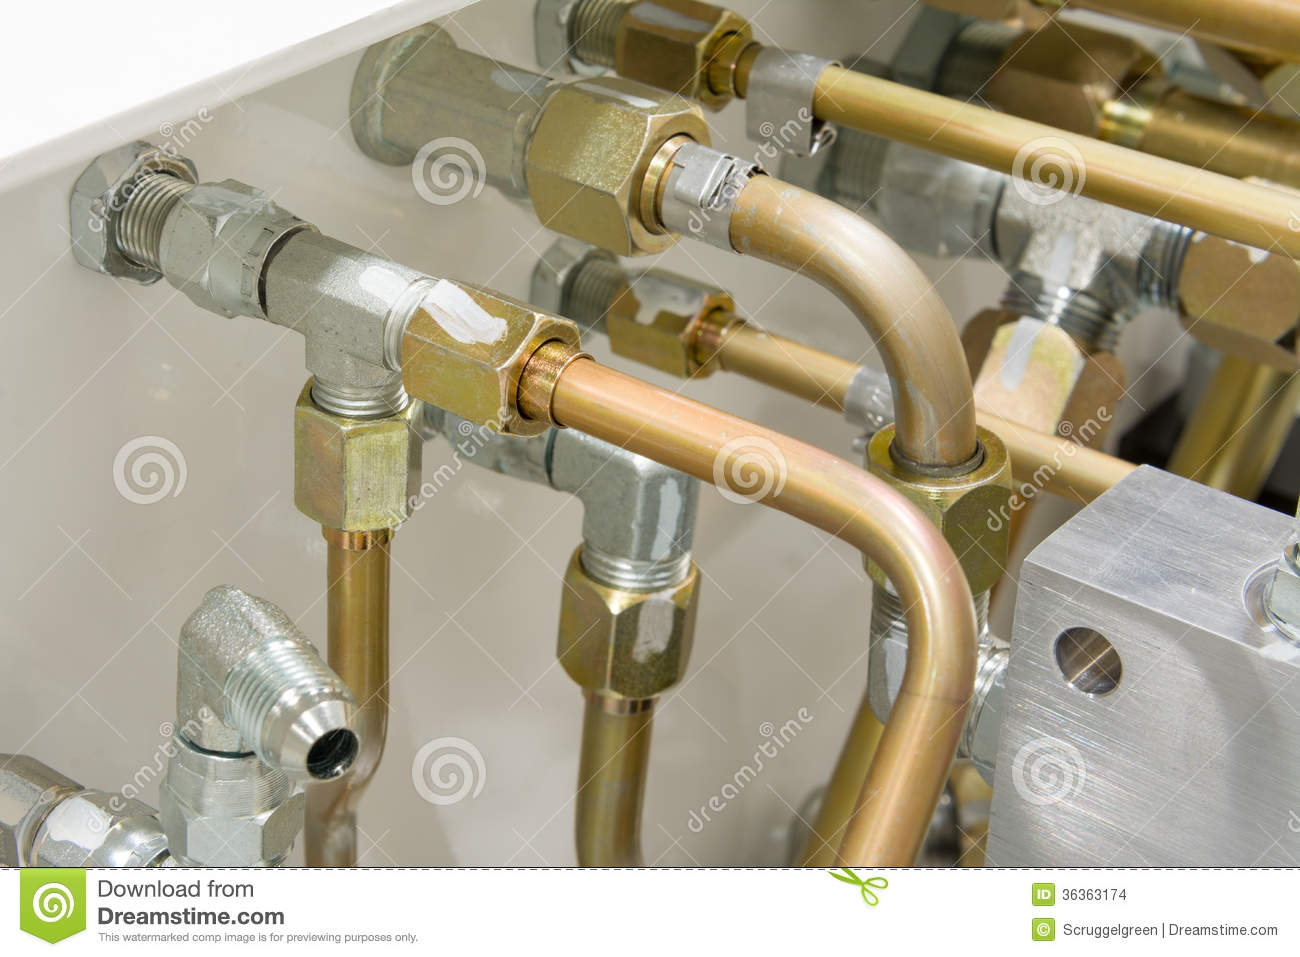 Tractor Tool Tube : Hydraulic tubes stock images image